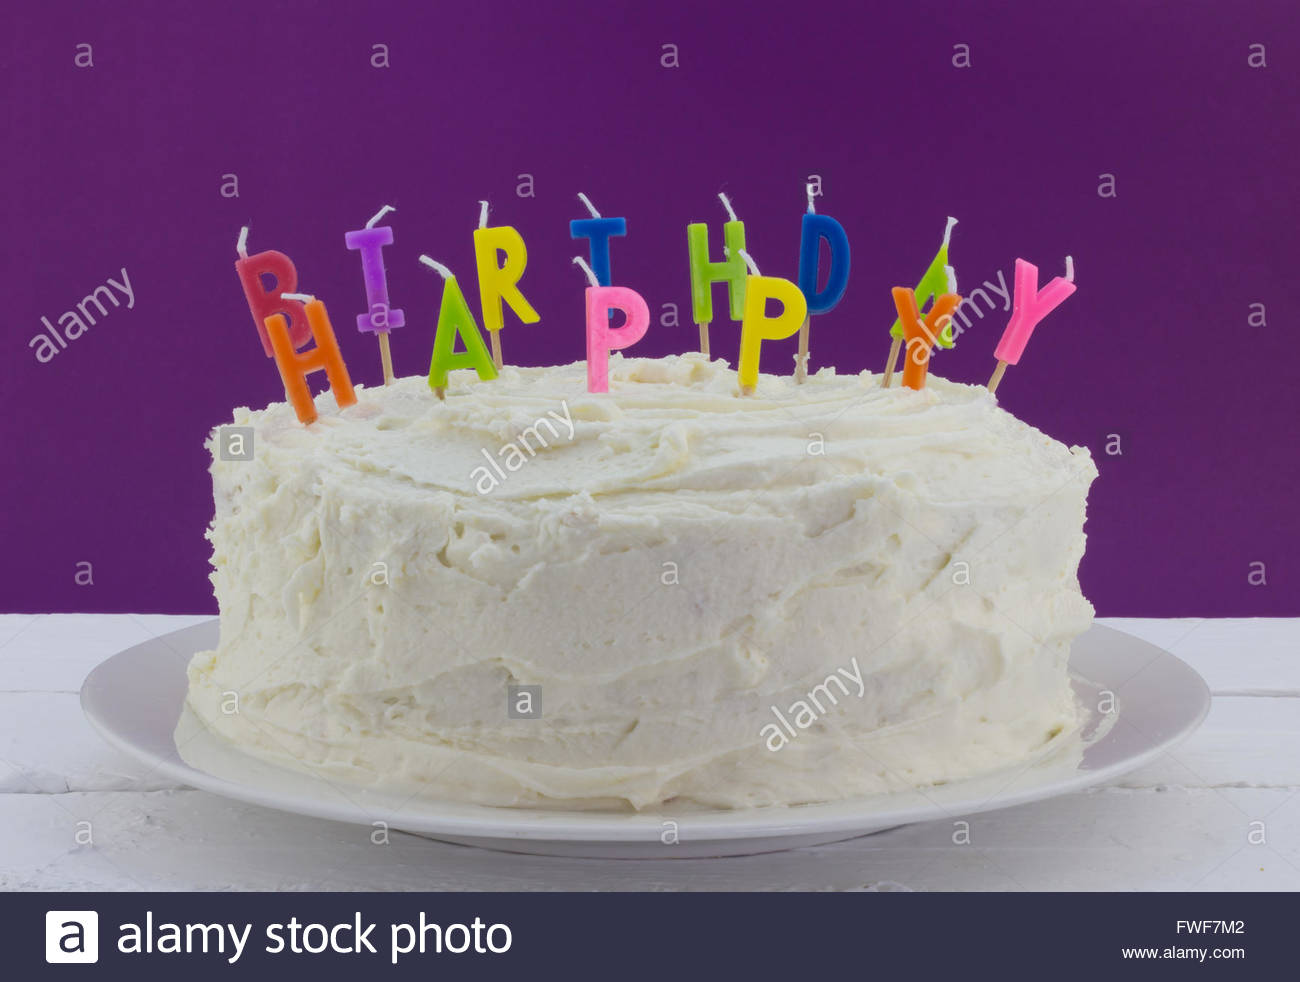 Birthday Cake On White Table With Unlit Candles